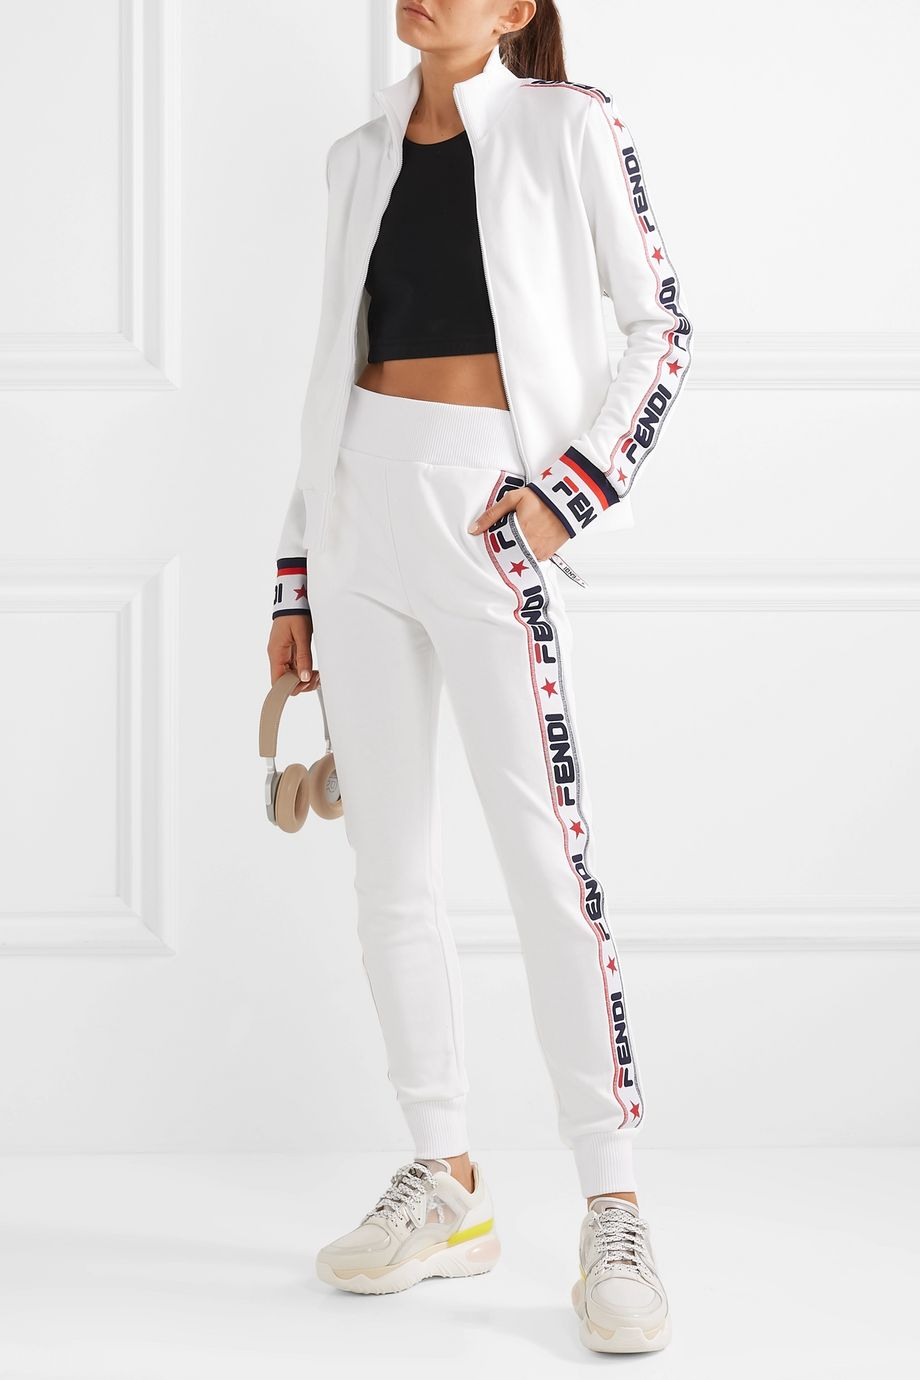 Fendi Embroidered cotton-blend jersey track jacket